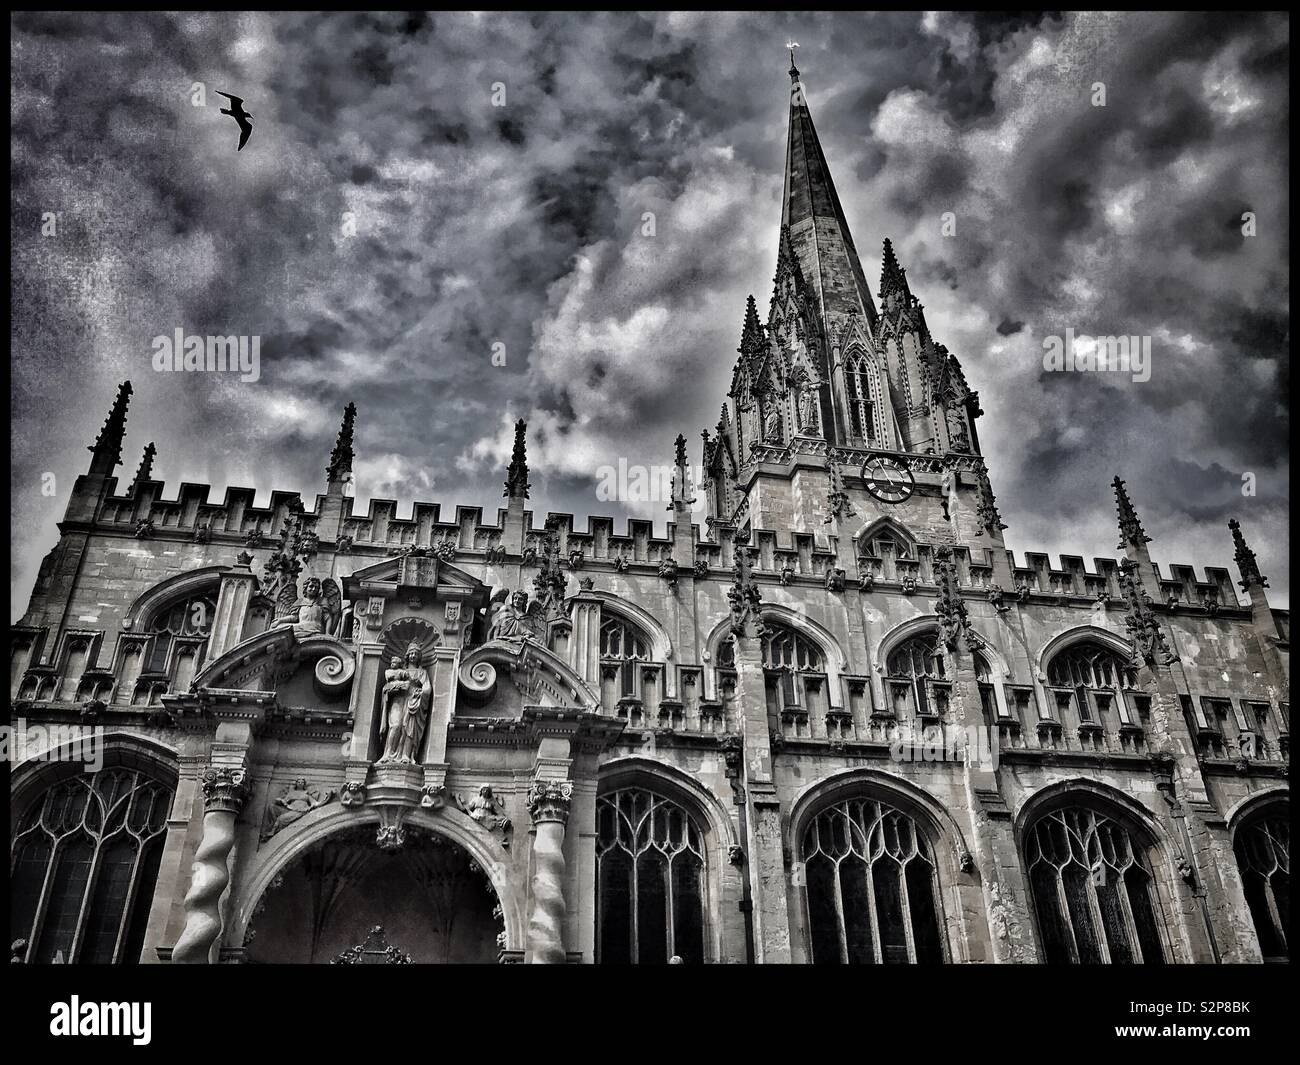 A moody image of the University Church Of St. Mary the Virgin in Oxford, England. This parish church has much history and is deeply connected to Oxford University. Photo © COLIN HOSKINS. - Stock Image